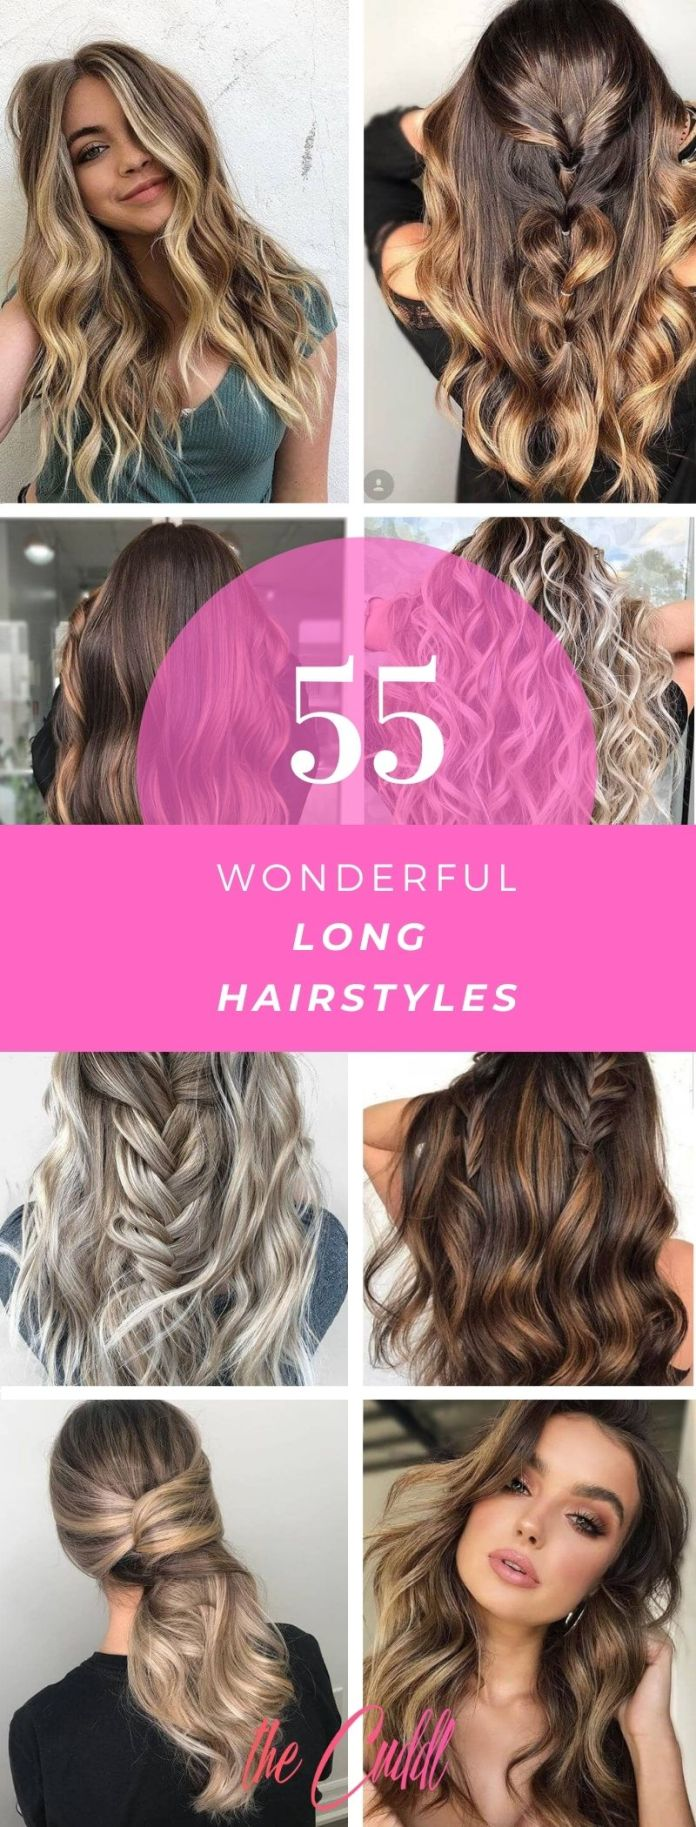 50 Insanely Hot Hairstyles For Long Hair That Will Wow You In 2020